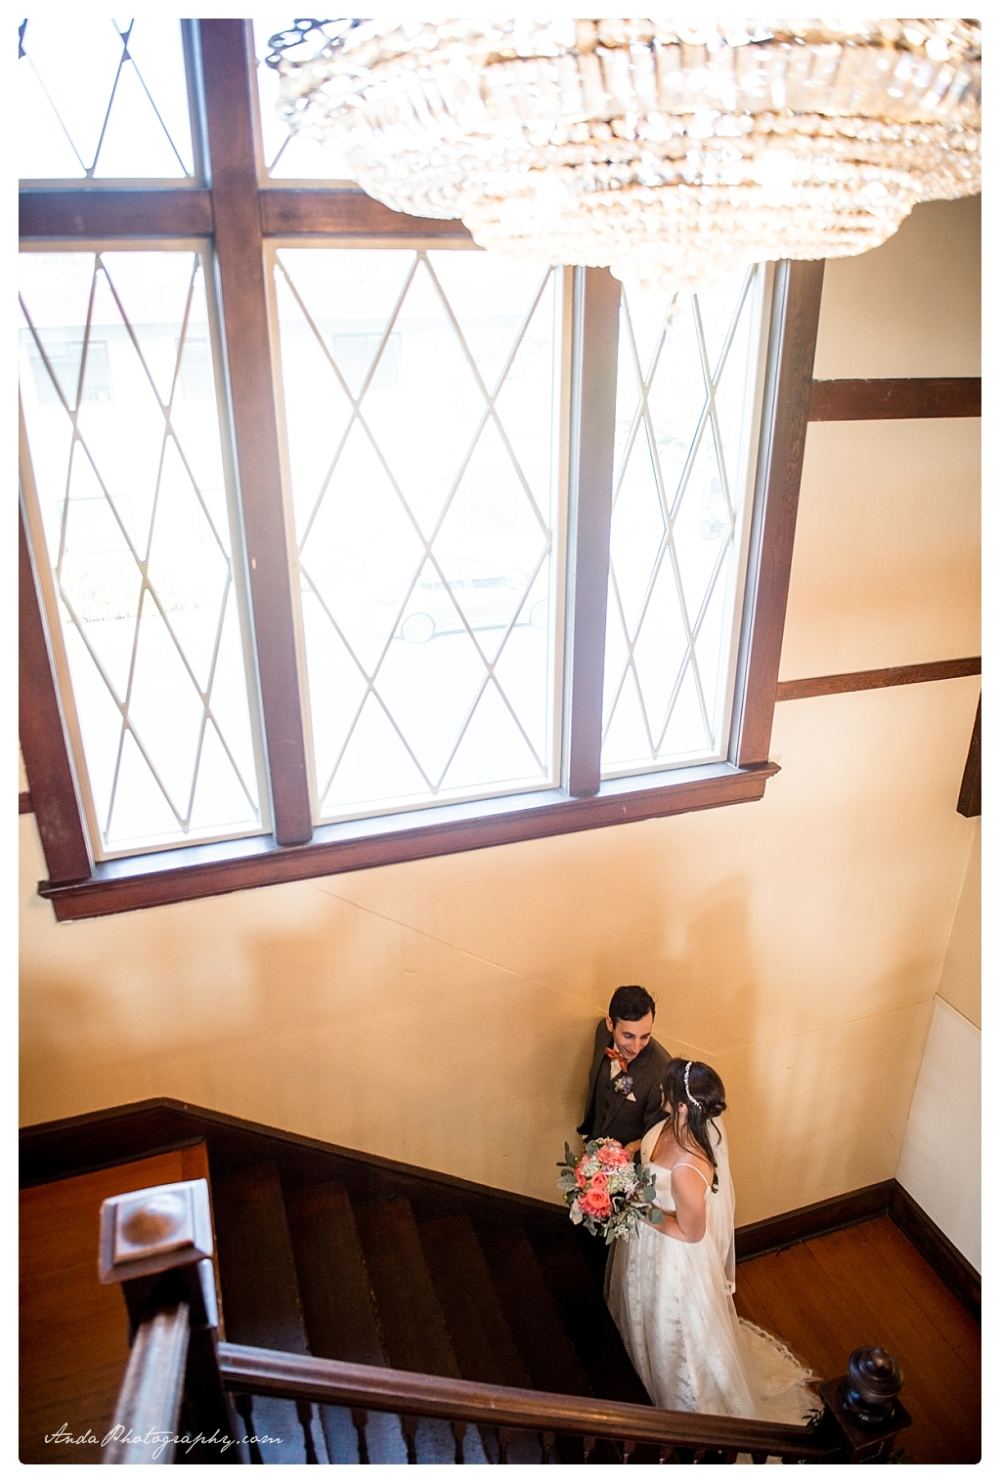 Anda Photography Bellingham wedding photographer Broadway Hall Wedding lifestyle wedding photographer Seattle Wedding Photographer_0059